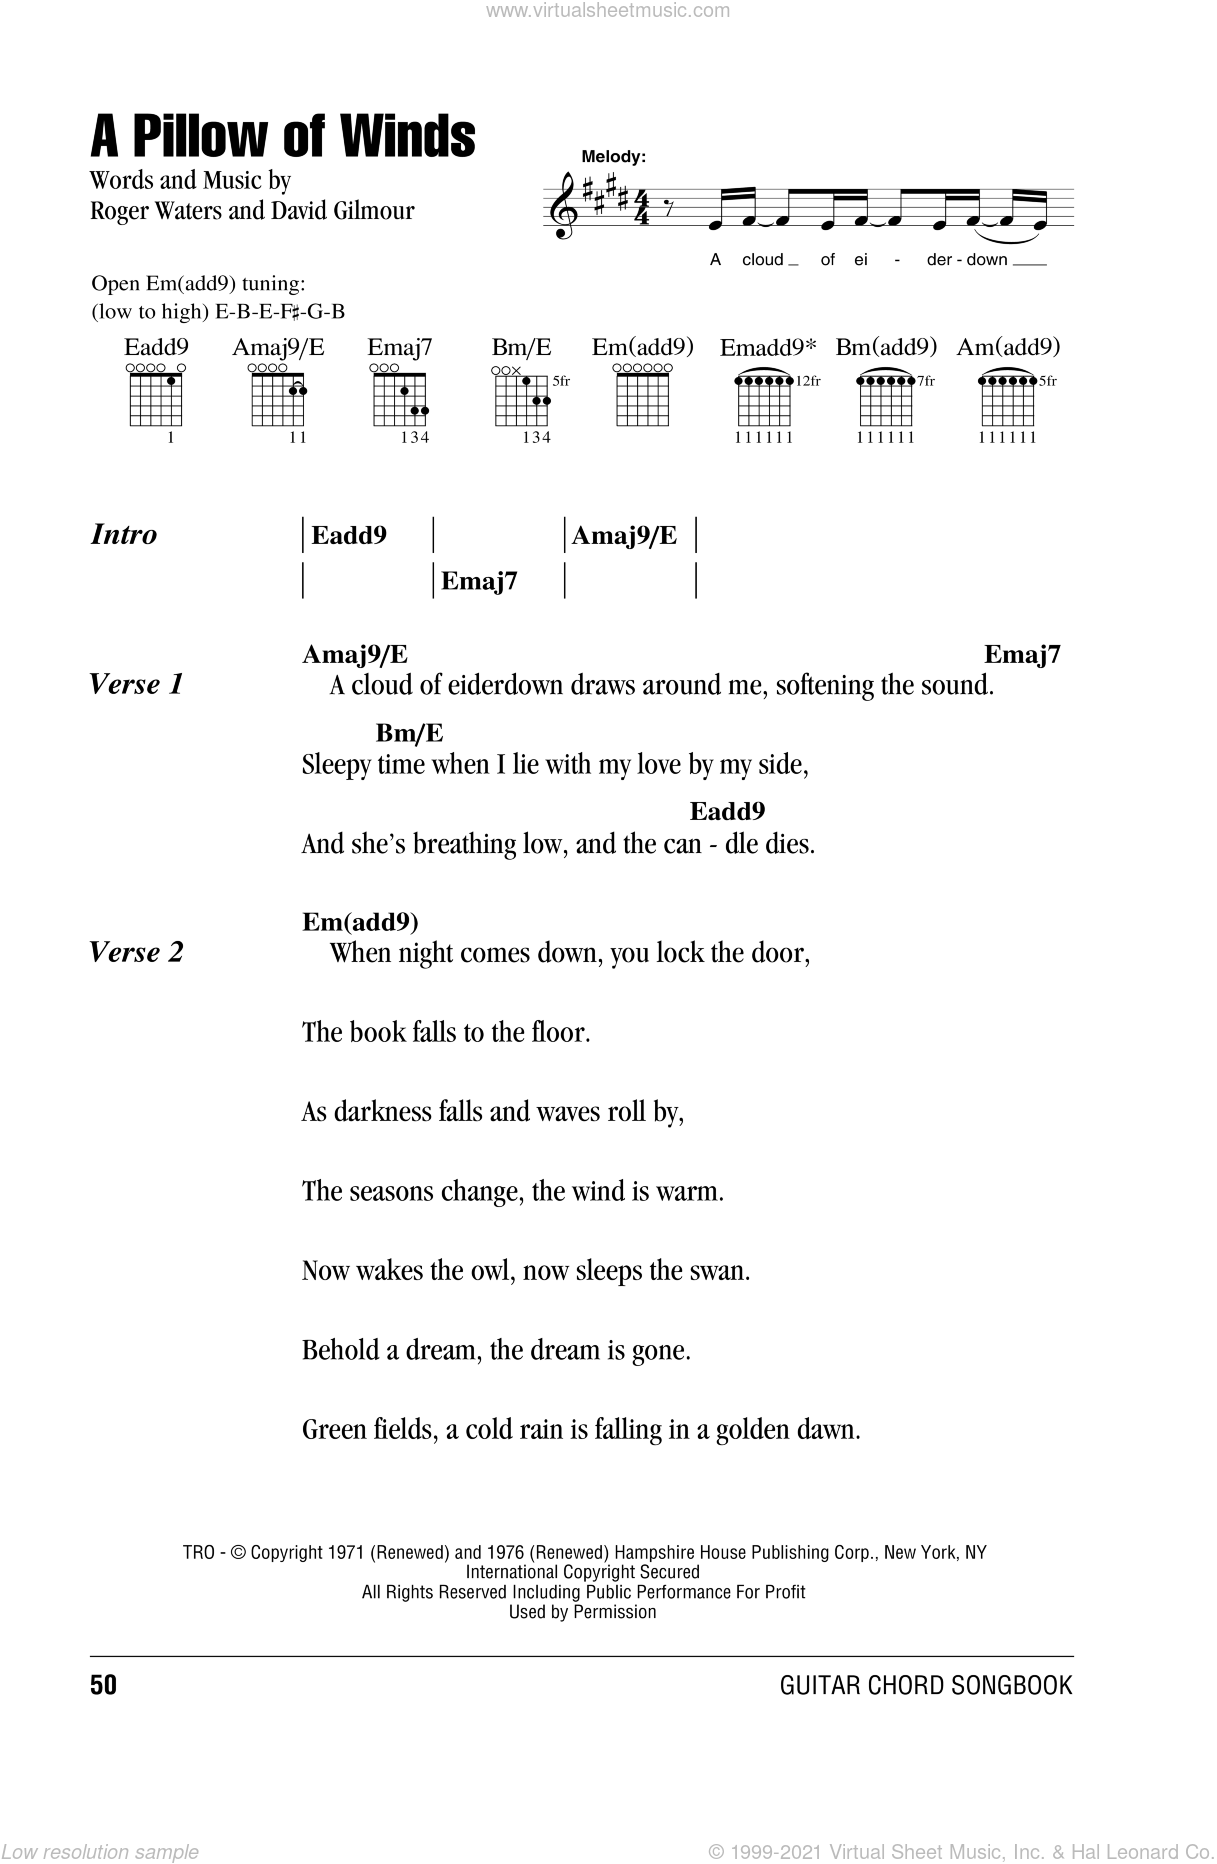 A Pillow Of Winds sheet music for guitar (chords) by Pink Floyd, David Gilmour and Roger Waters, intermediate skill level